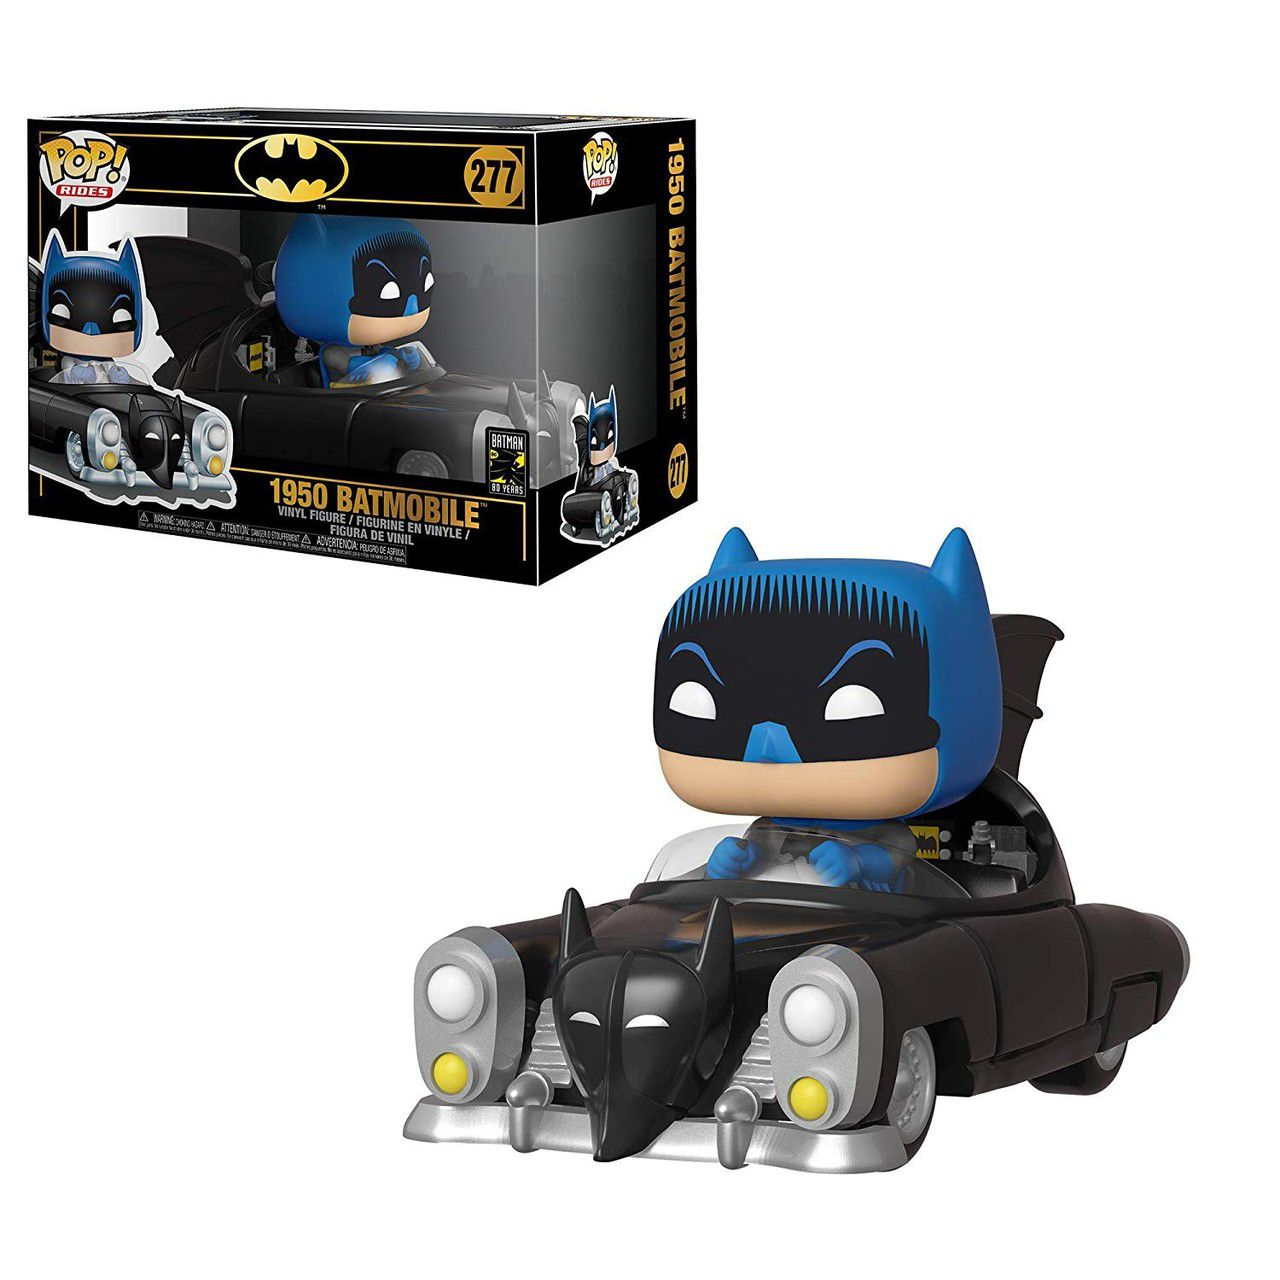 Funko Pop! Batmóvel (Batmobile) 1950 - 80th Anniversary #277 - Funko